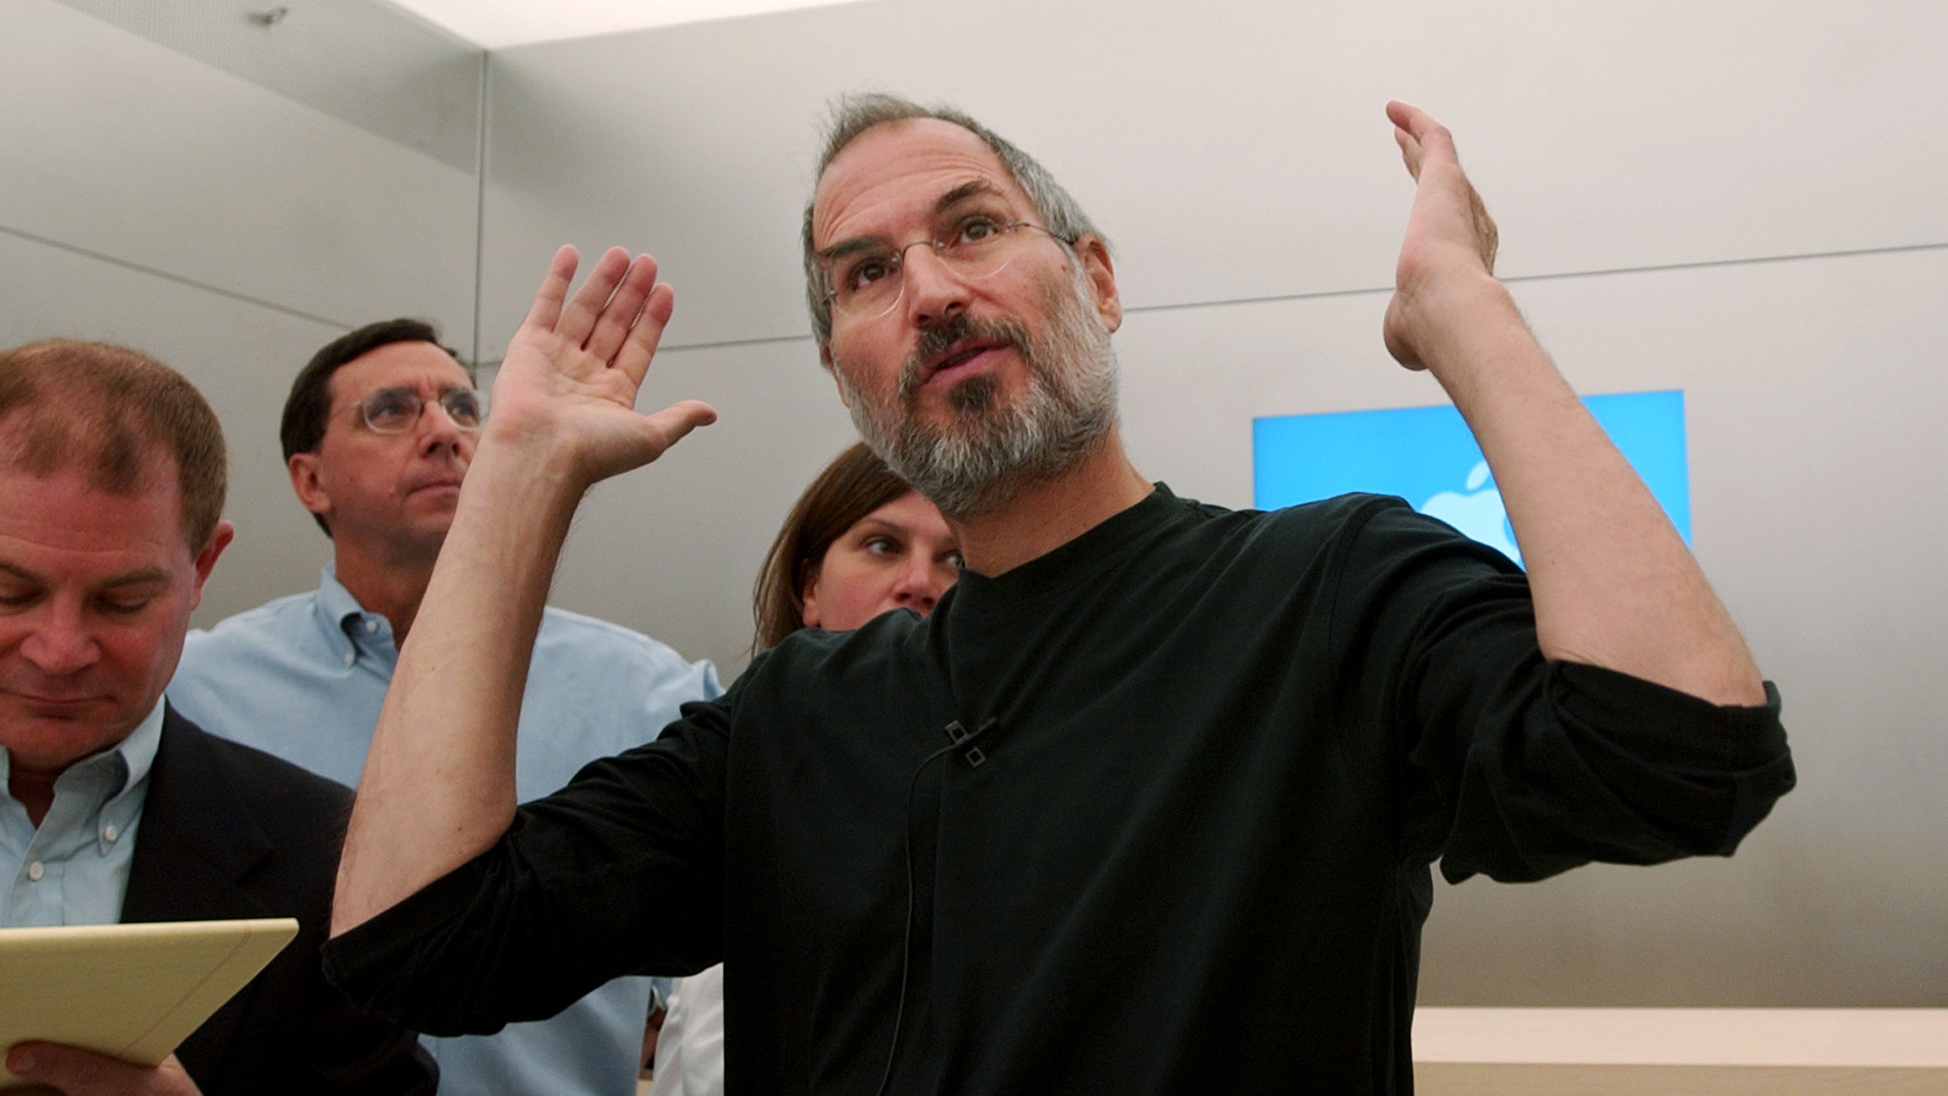 Steve Jobs Apple AAPL